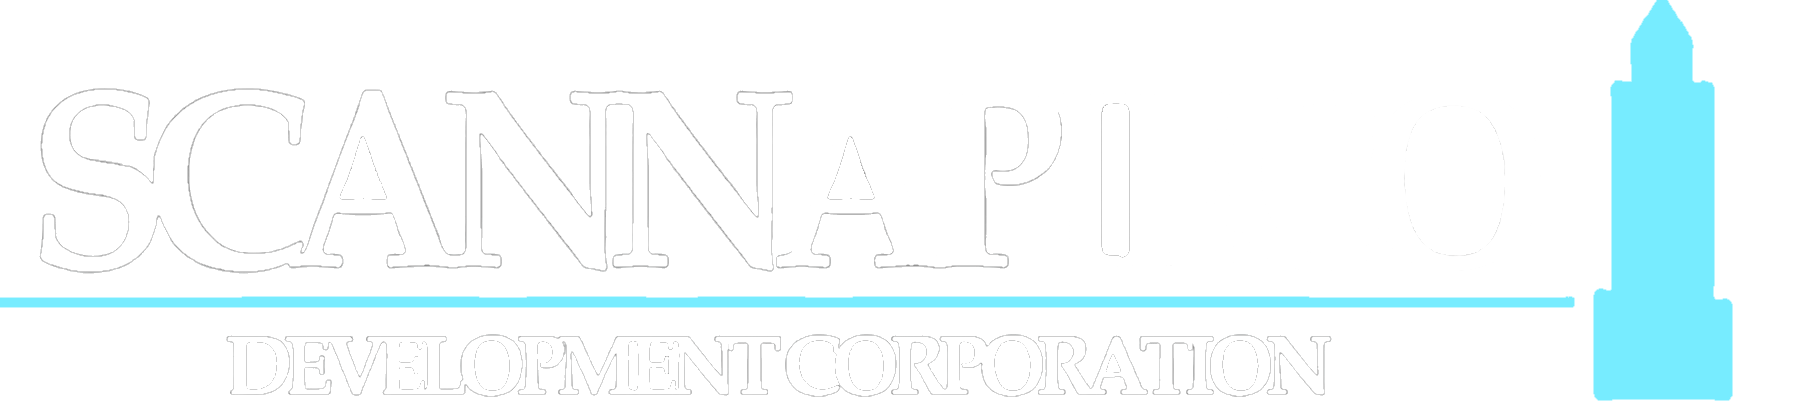 Scannapieco Development Corporation